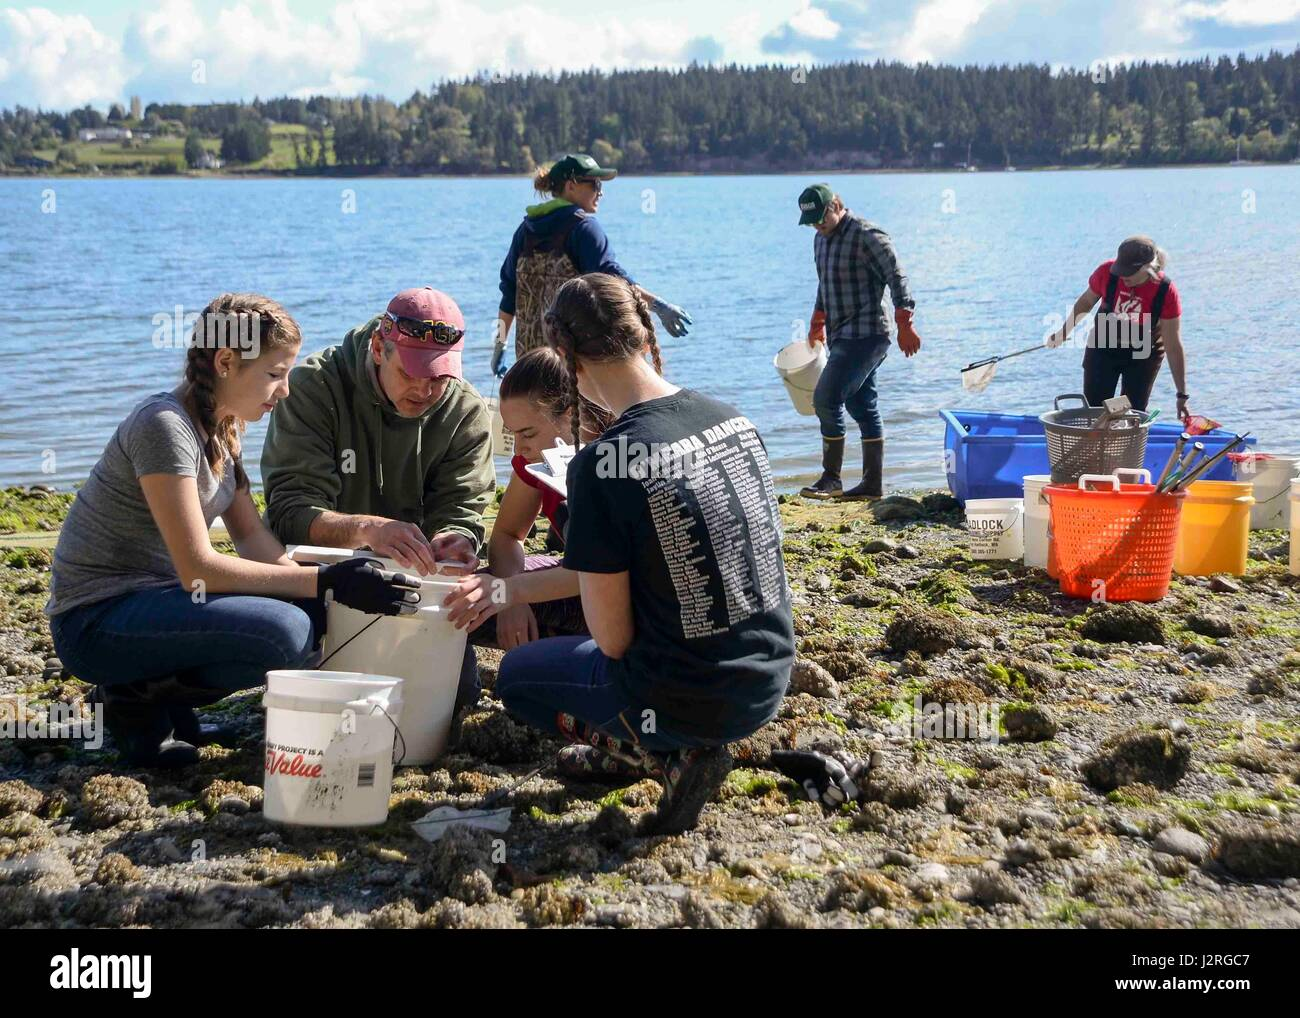 170428-N-VH385-104 INDIAN ISLAND, Wash., (April 28, 2017) – Jake Gregg, a fishery biologist with the United States - Stock Image